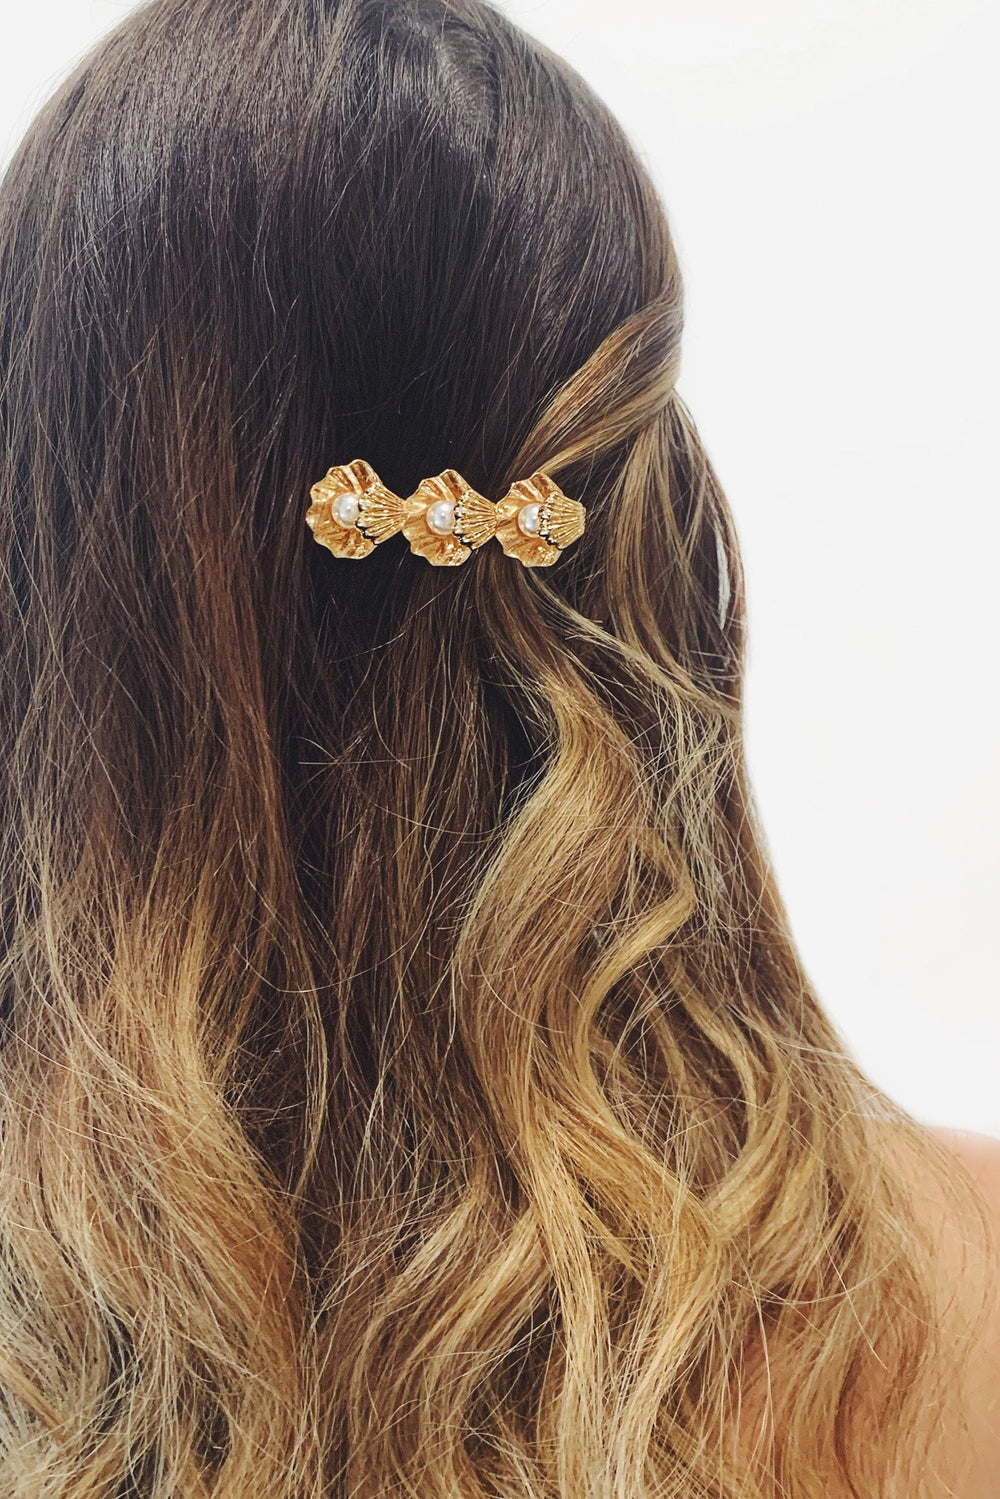 Gold Seashell Hair Clip with Pearls